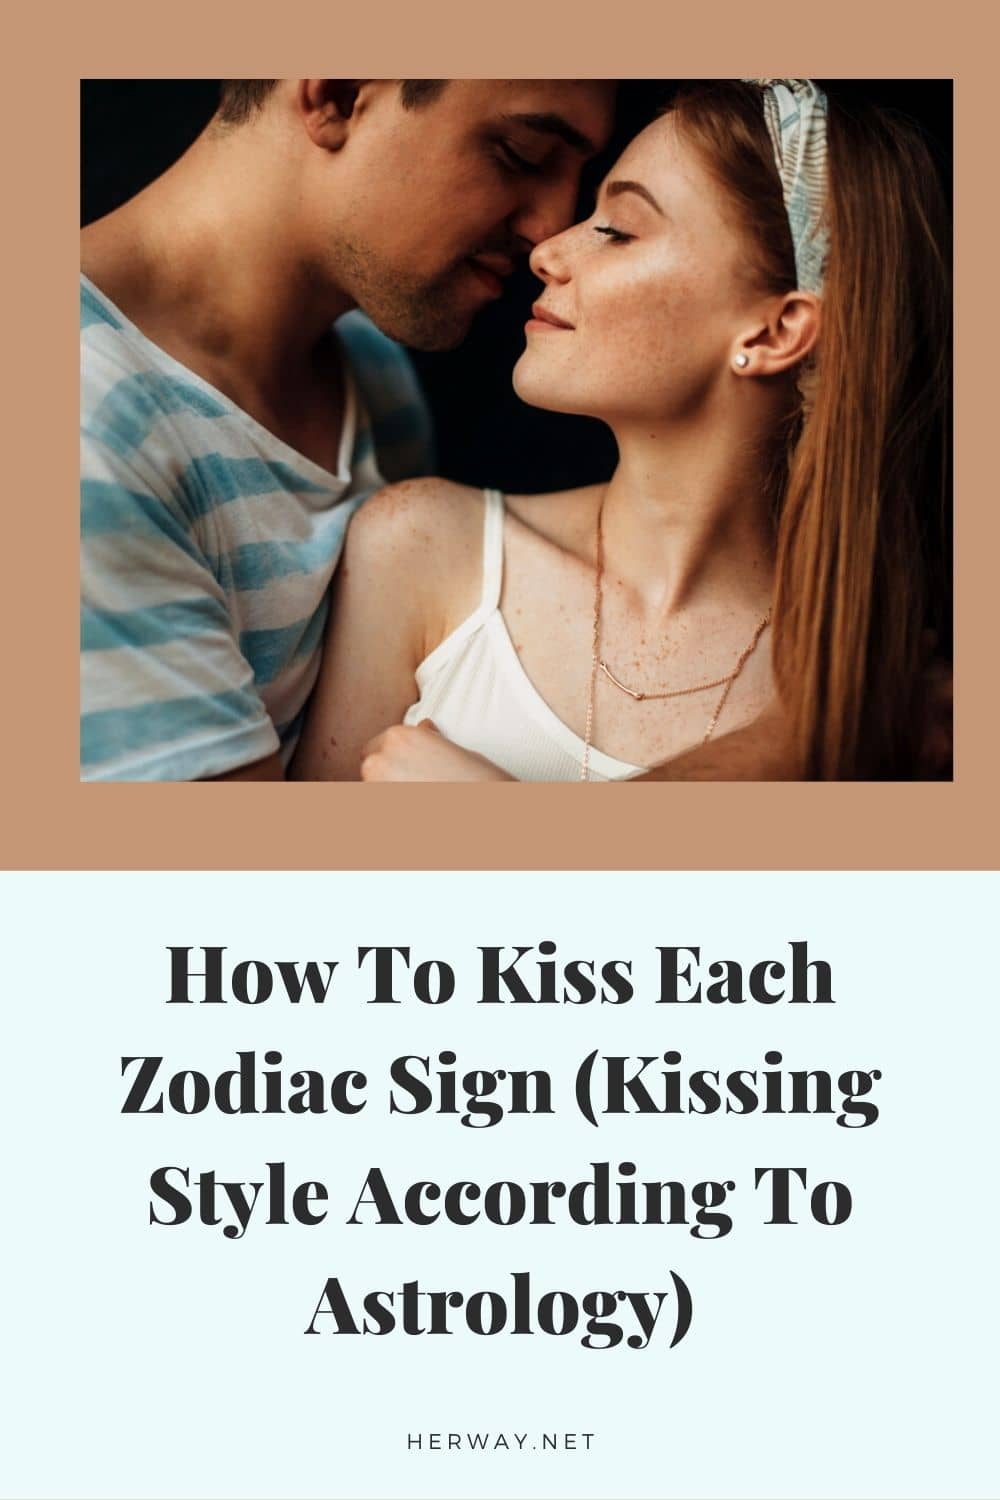 How To Kiss Each Zodiac Sign (Kissing Style According To Astrology)